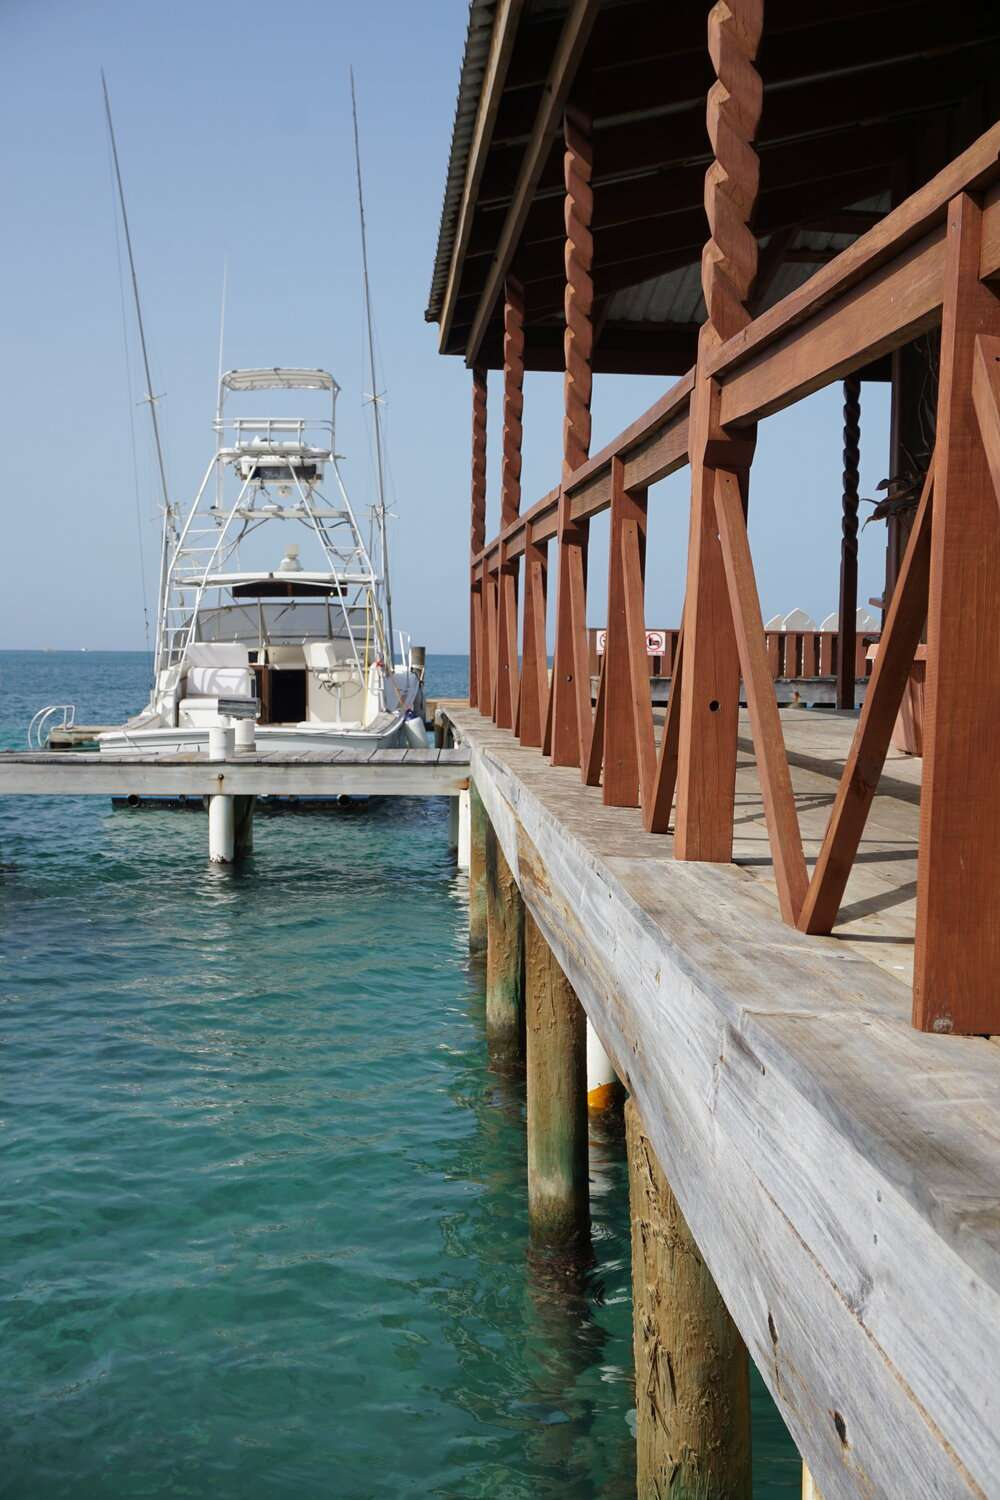 looking along the wooden dock with a white boat at the end, at Bay Islands College of diving in Utila